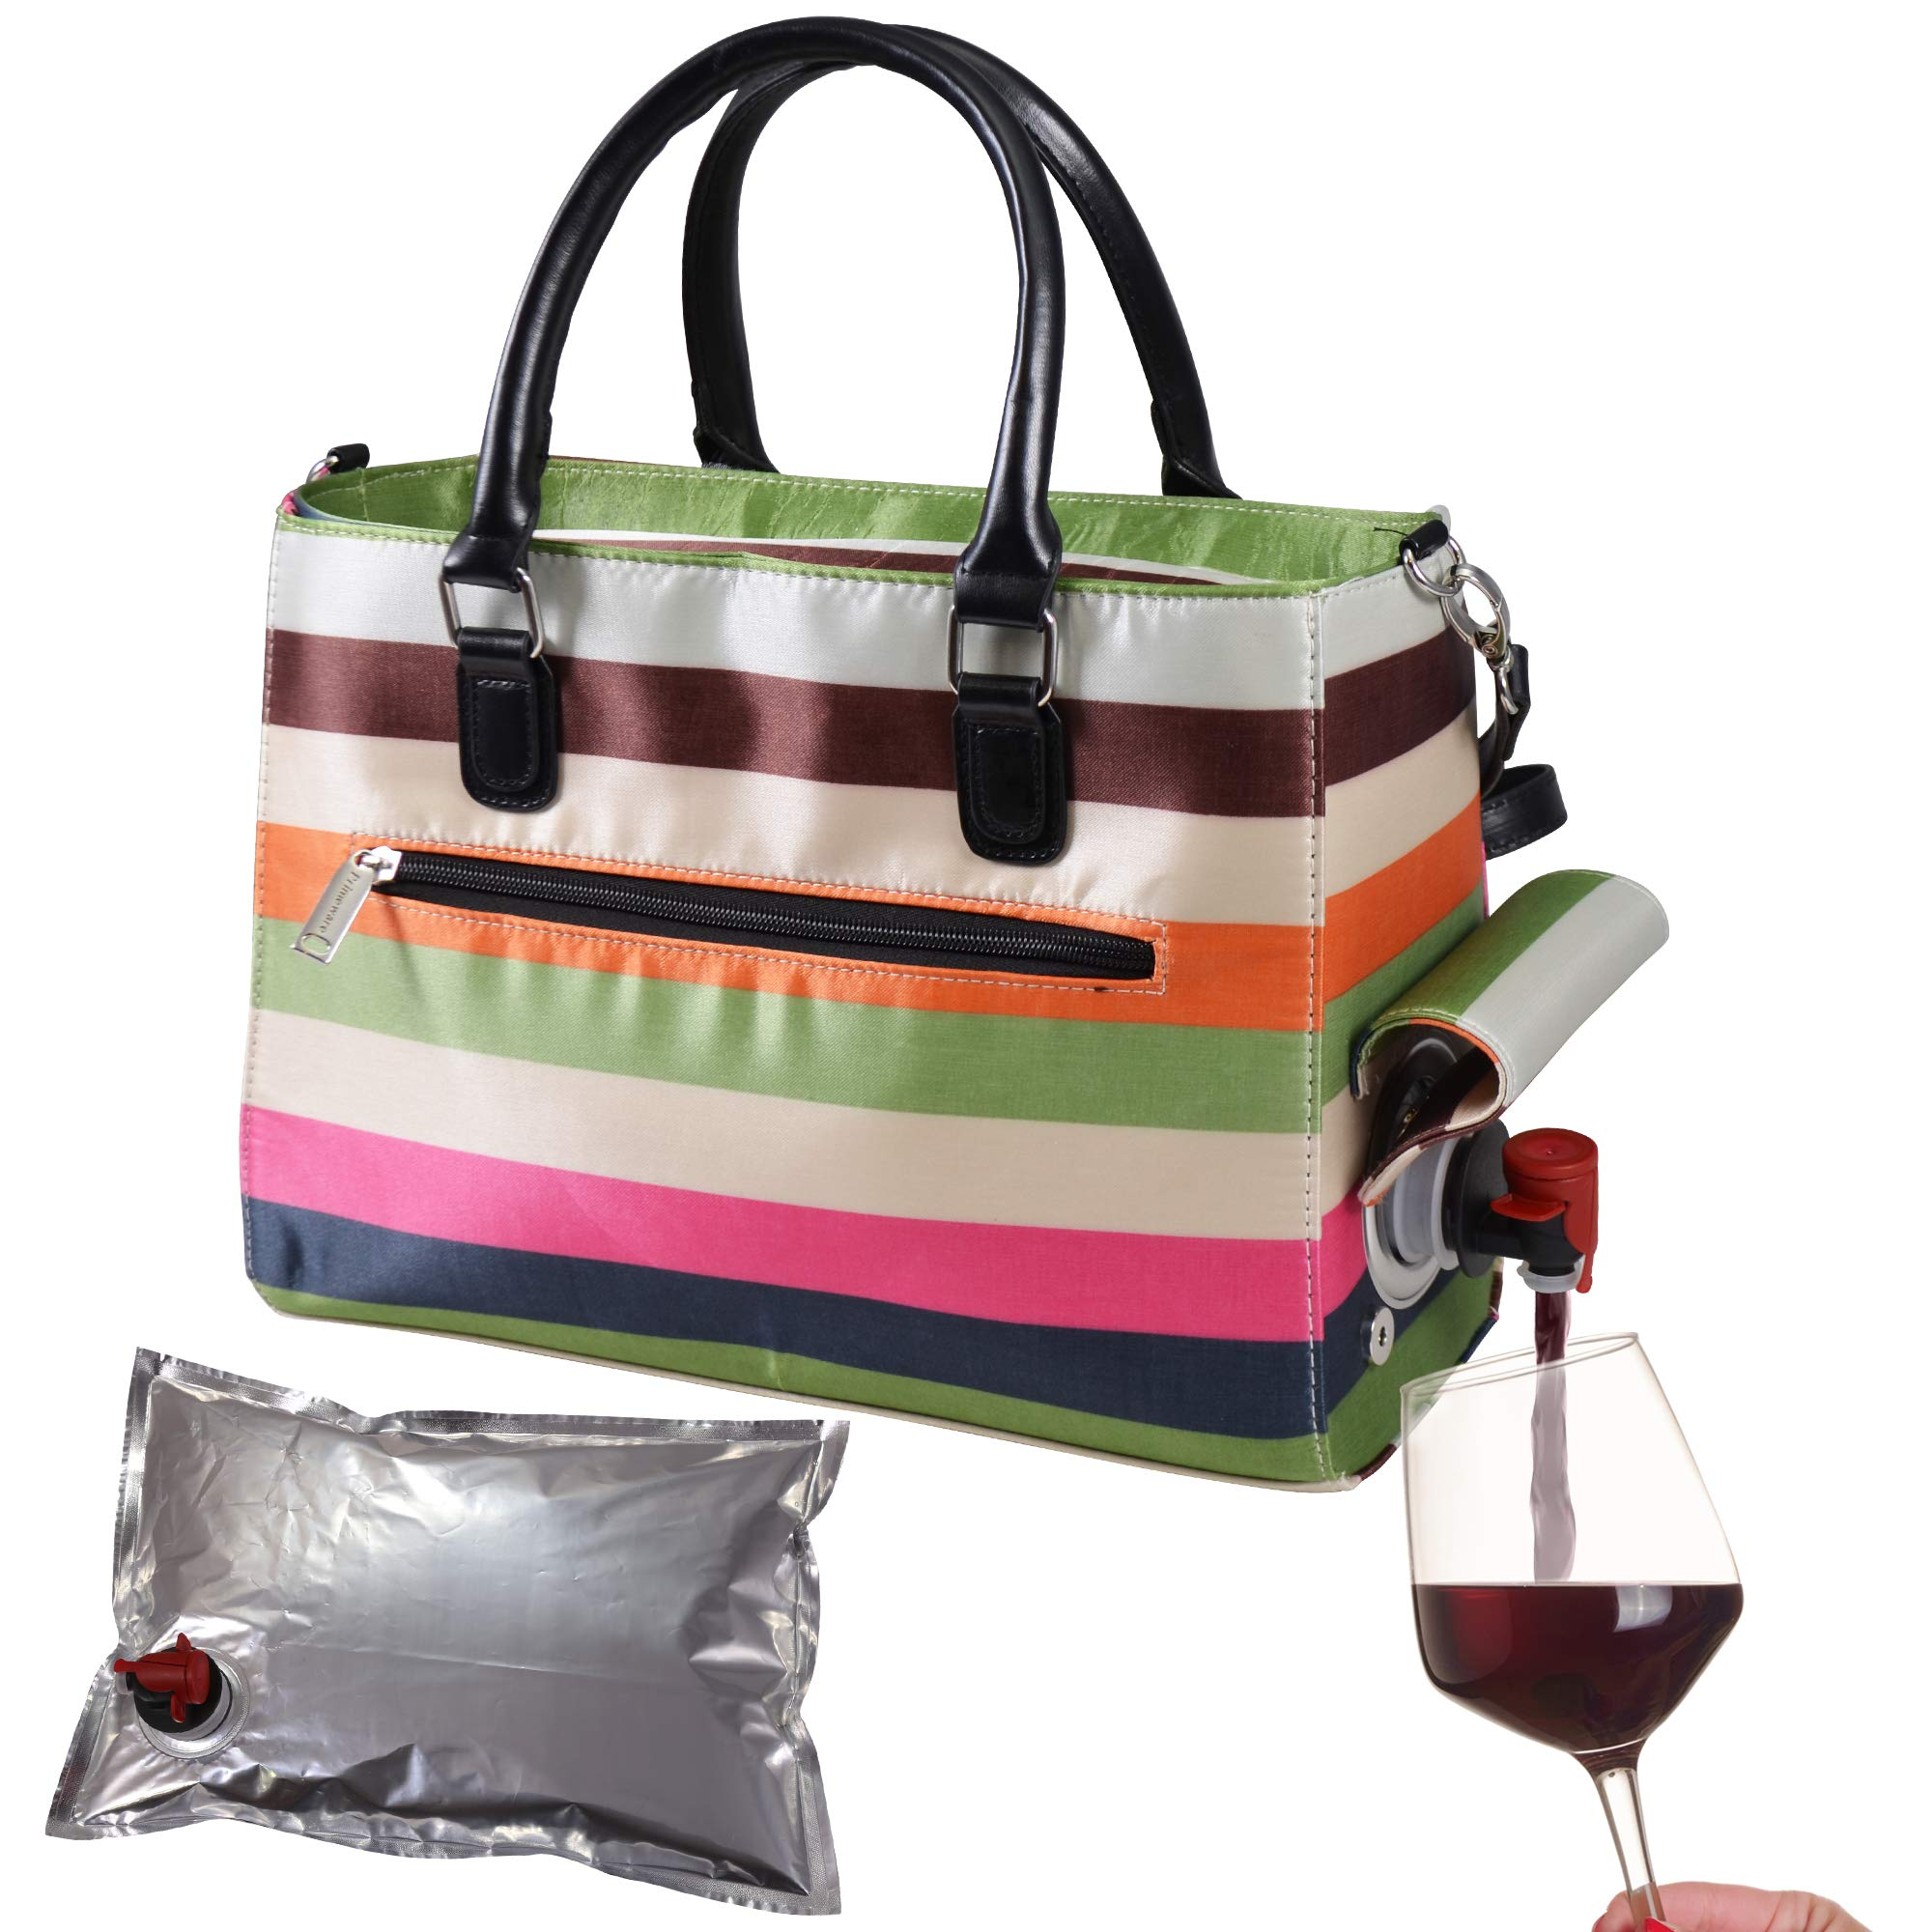 Primeware Insulated Drink Purse w/ 3L Bladder Bag   Thermal Hot and Cold Storage   Portable Drinking Dispenser for Wine, Cocktails, Beer, Alcohol   PU Leather Finish (Stripe)